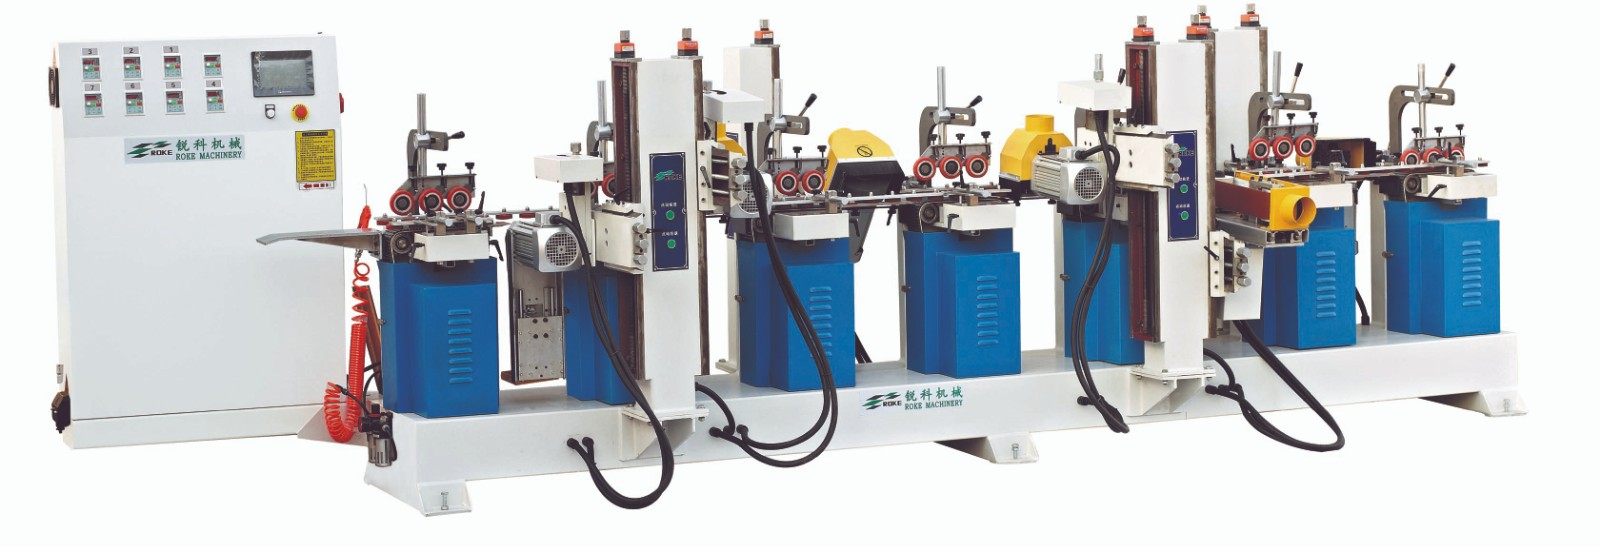 durable wood finger joint machine stellite alloy manufacturer for wood sawing-2